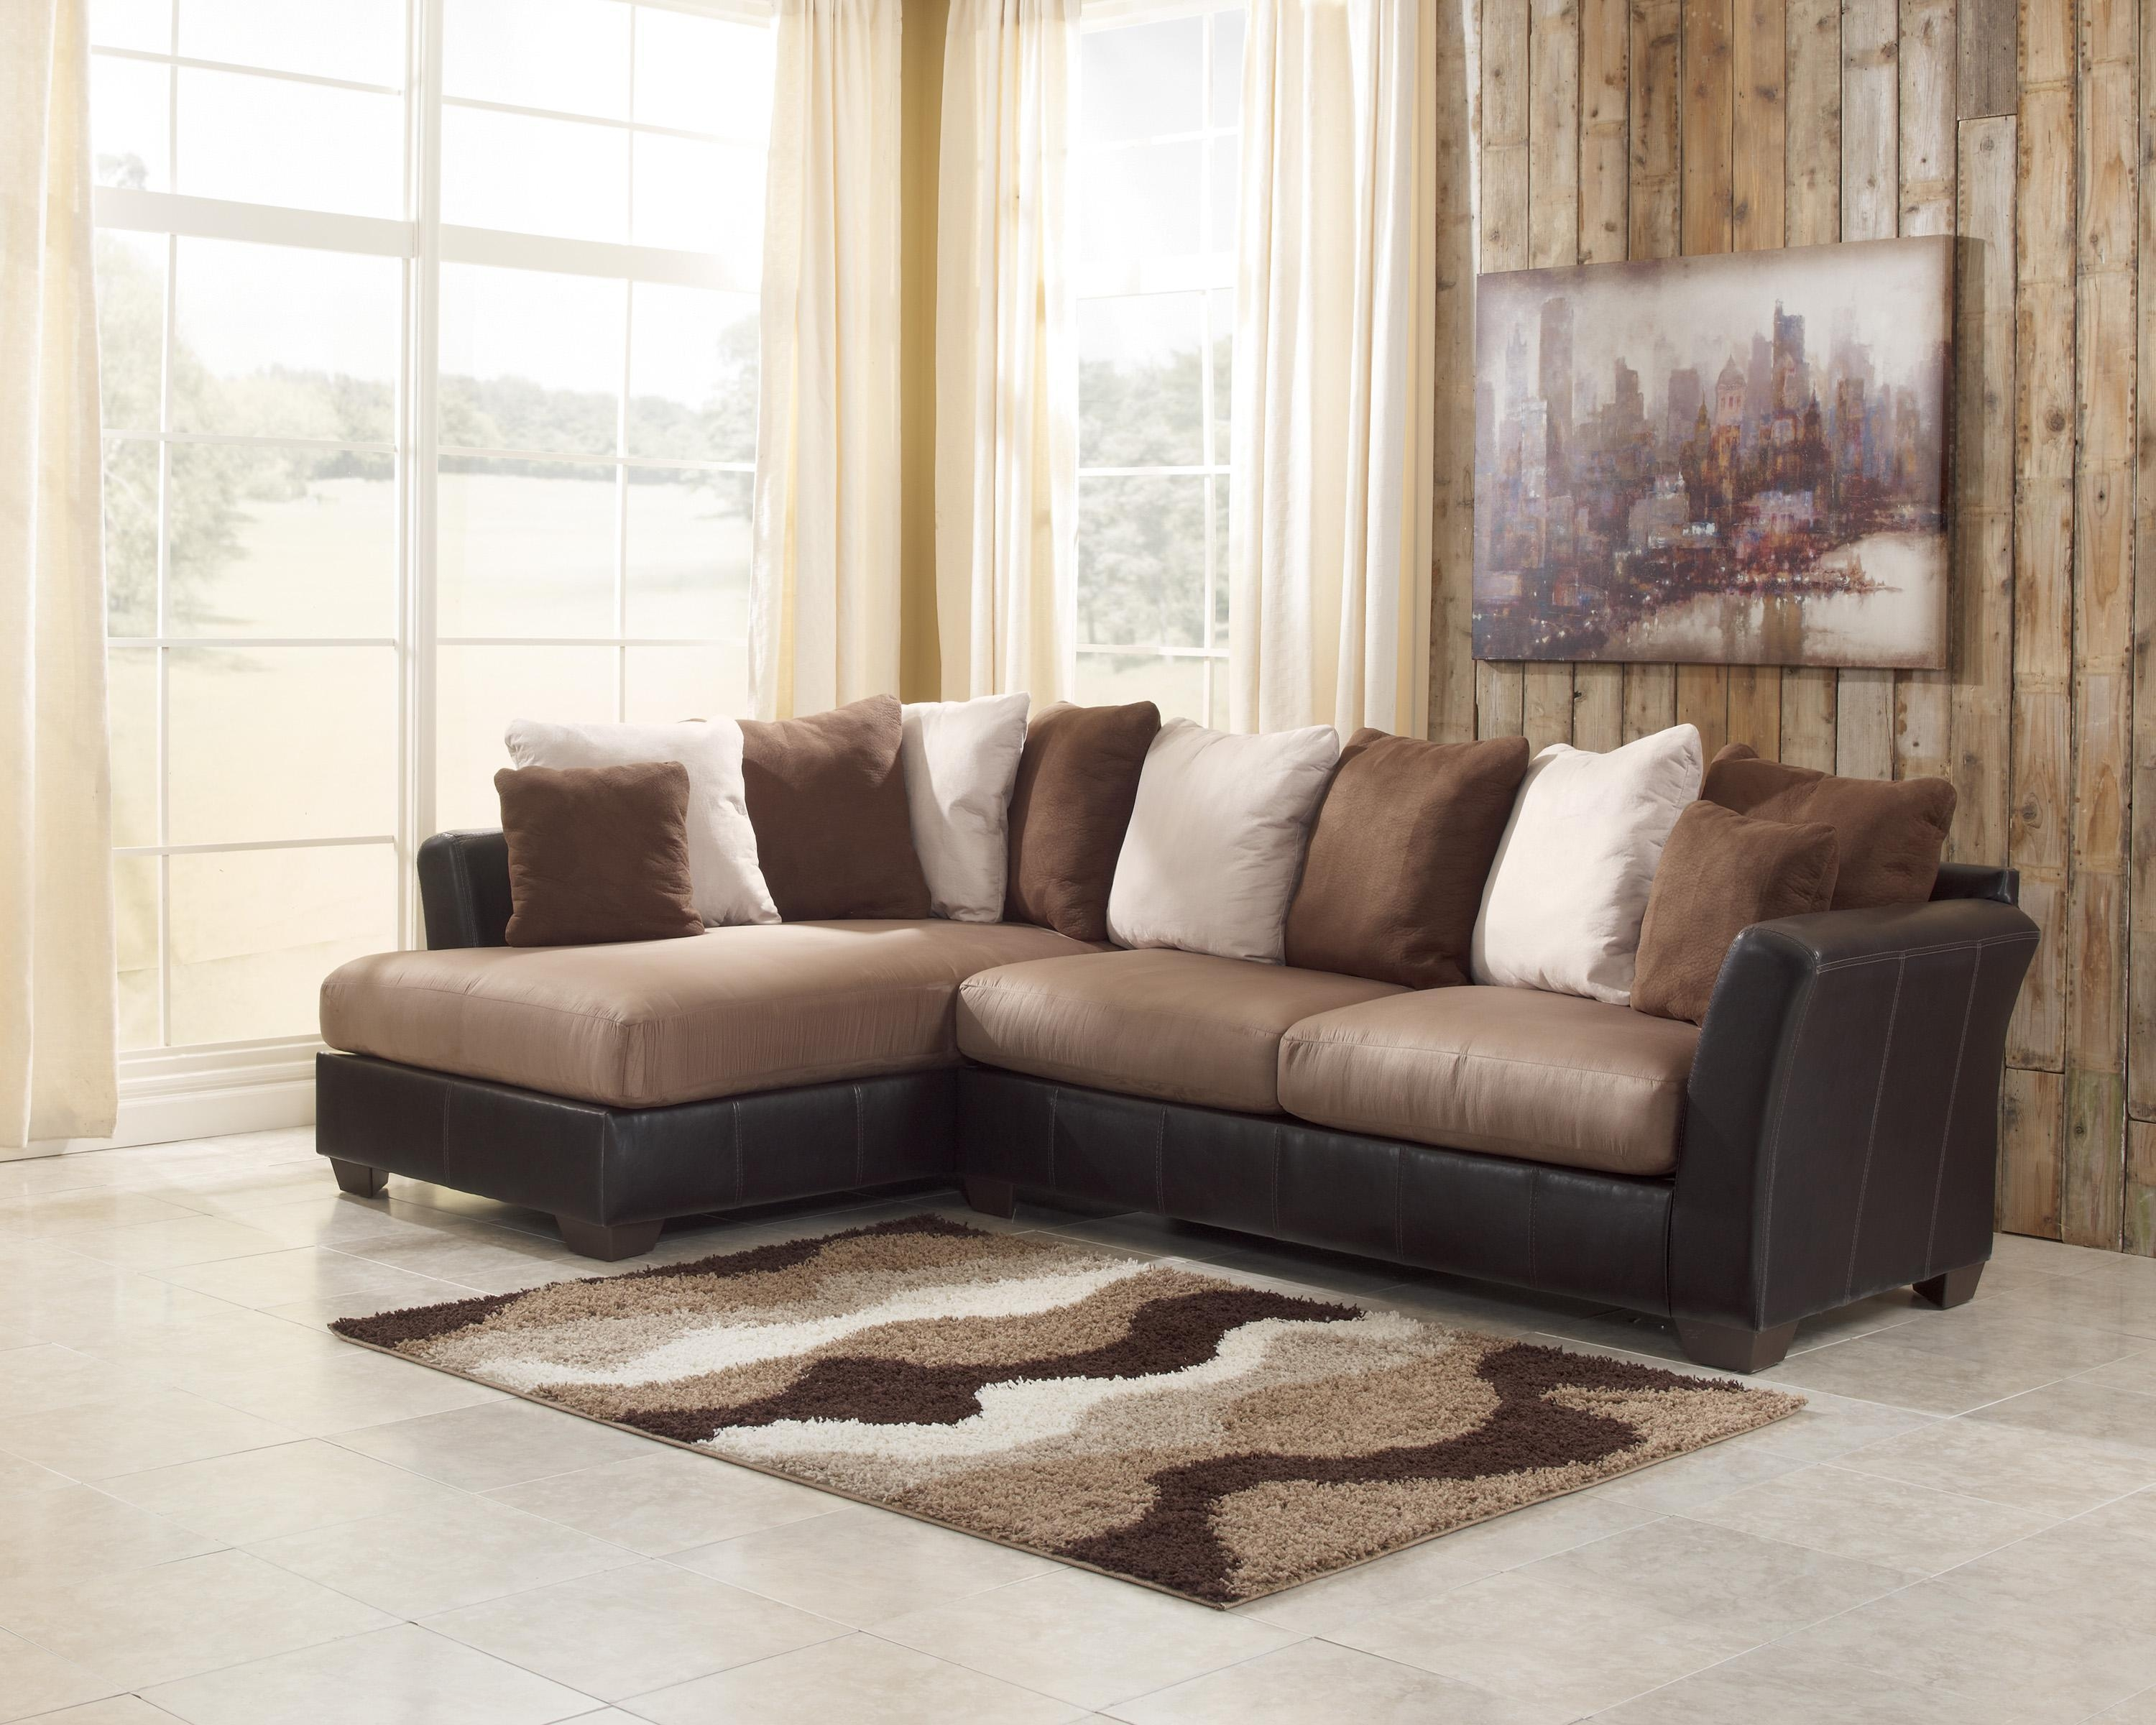 2 Piece Sectional Sofa Leather | Tehranmix Decoration Pertaining To 2 Piece Sofas (Image 4 of 20)